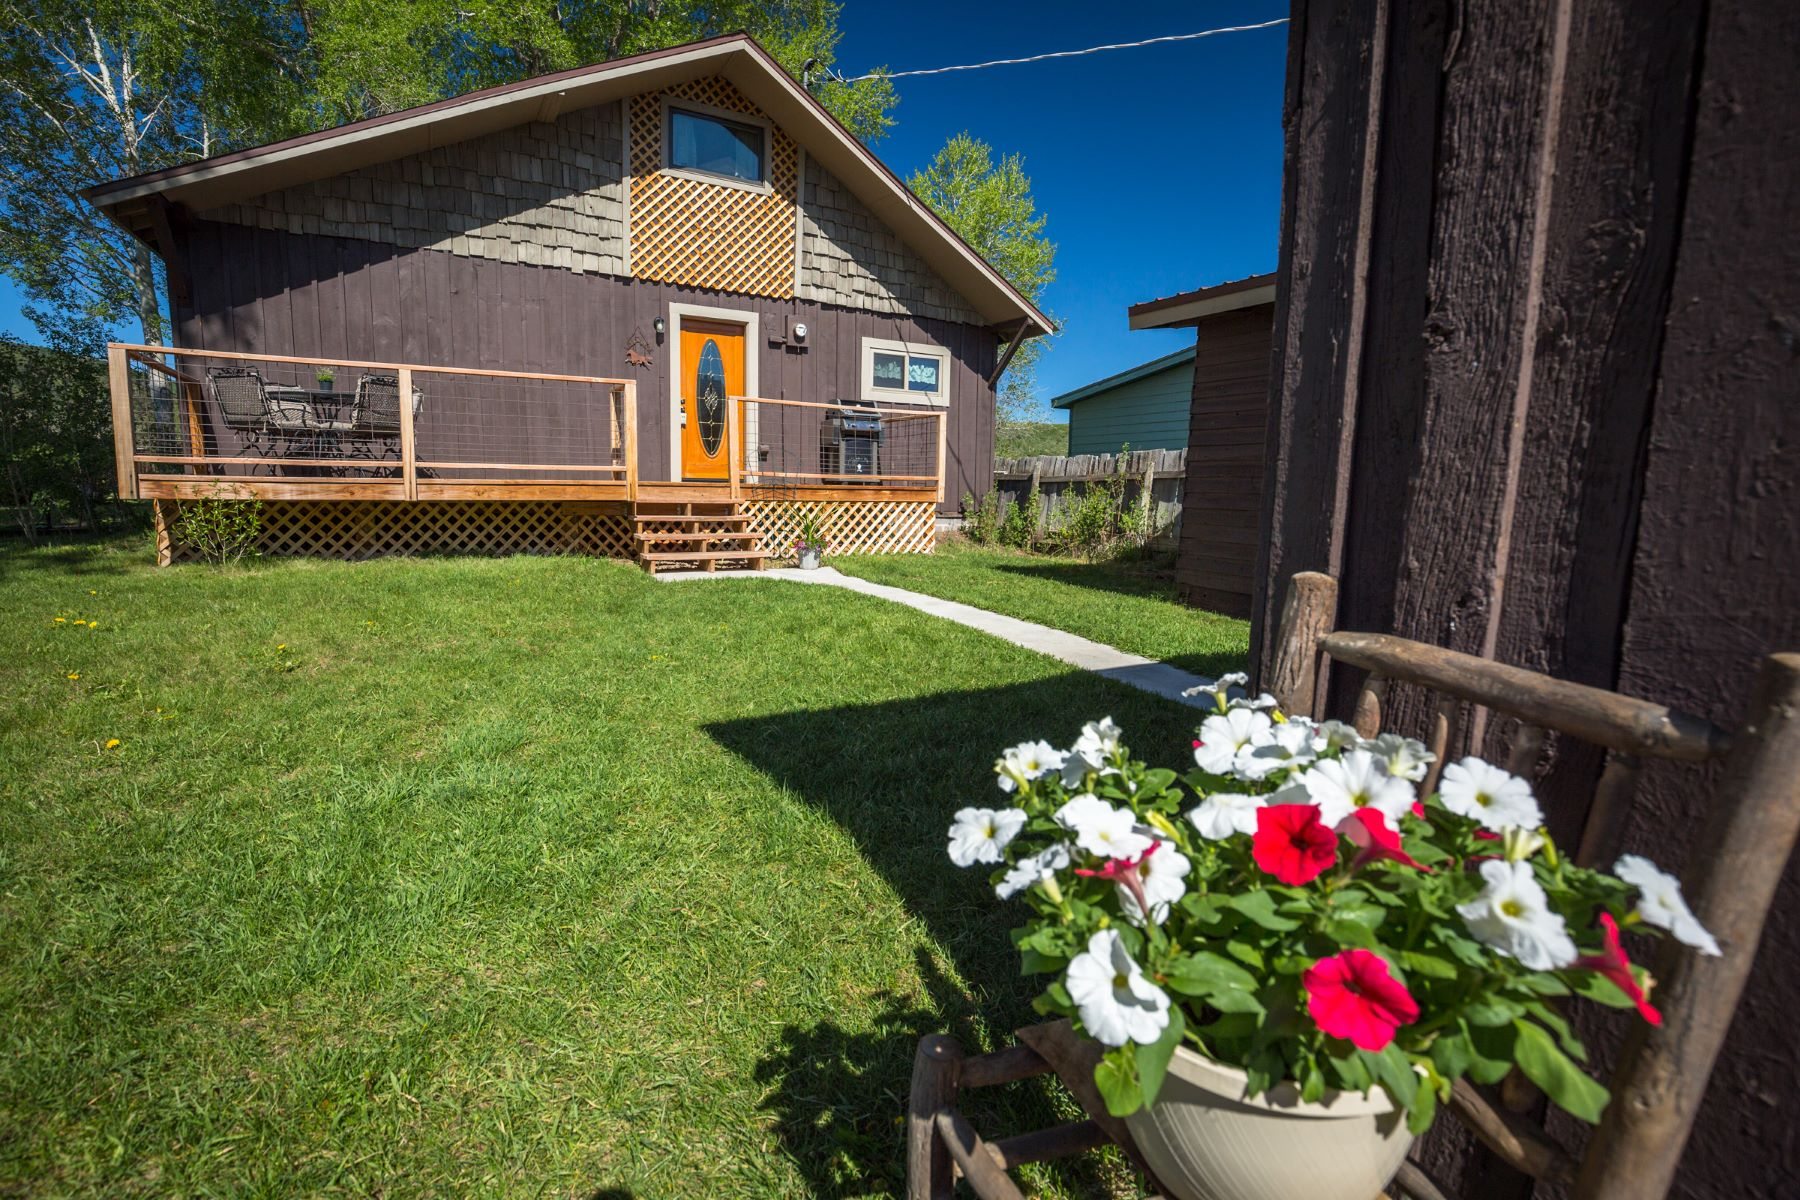 Single Family Homes for Sale at Quiet Country Bungalow 25700 Routt Street Phippsburg, Colorado 80469 United States